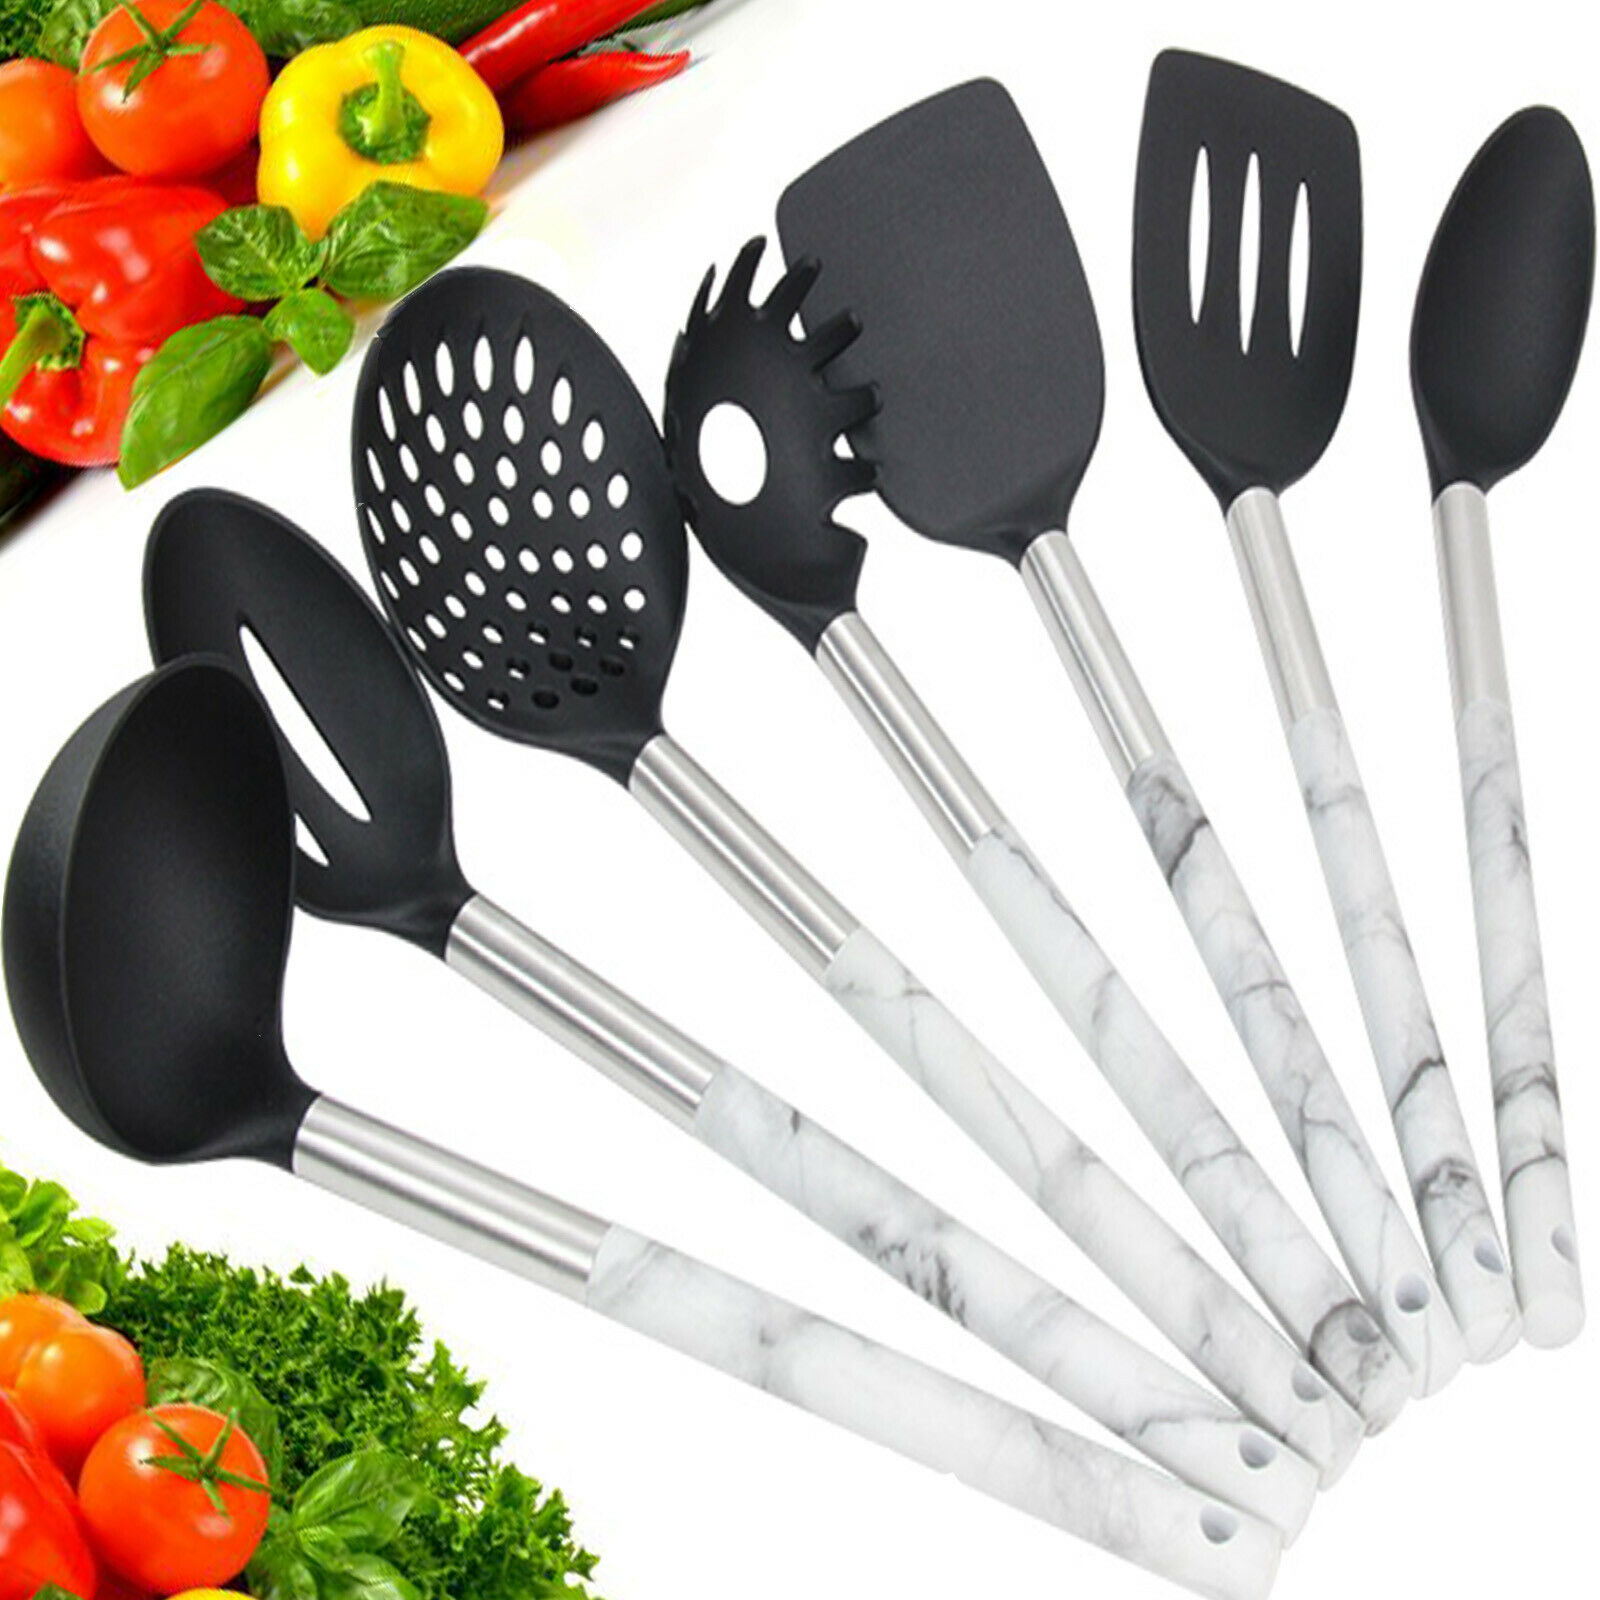 KITCHEN UTENSILS 7 SET, COOKING SET 🔥 HEAT-RESISTANT. DIS